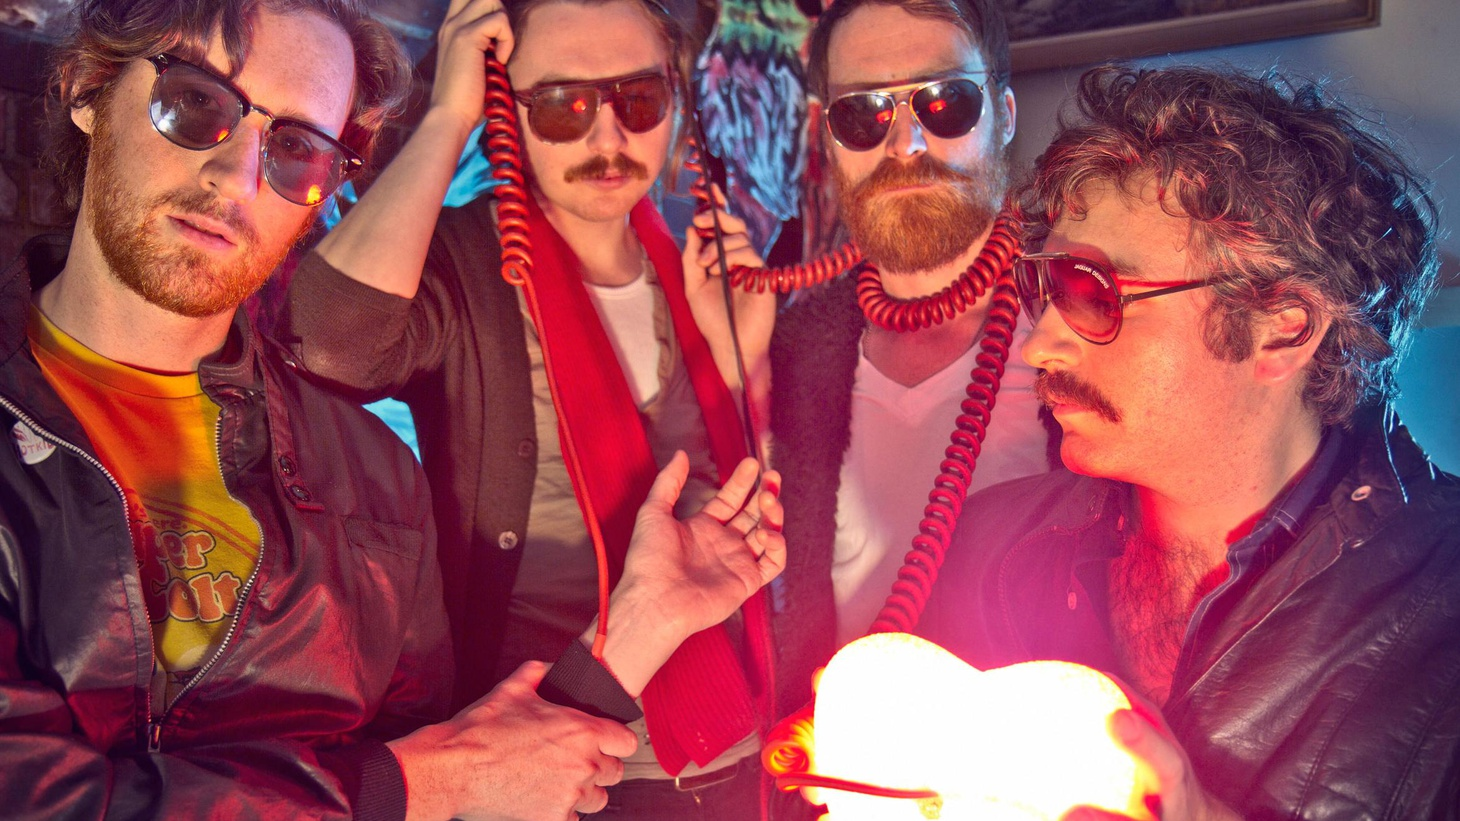 Toronto band Zeus has a vintage sound that is an ode to Southern rock jams and T Rex glam....